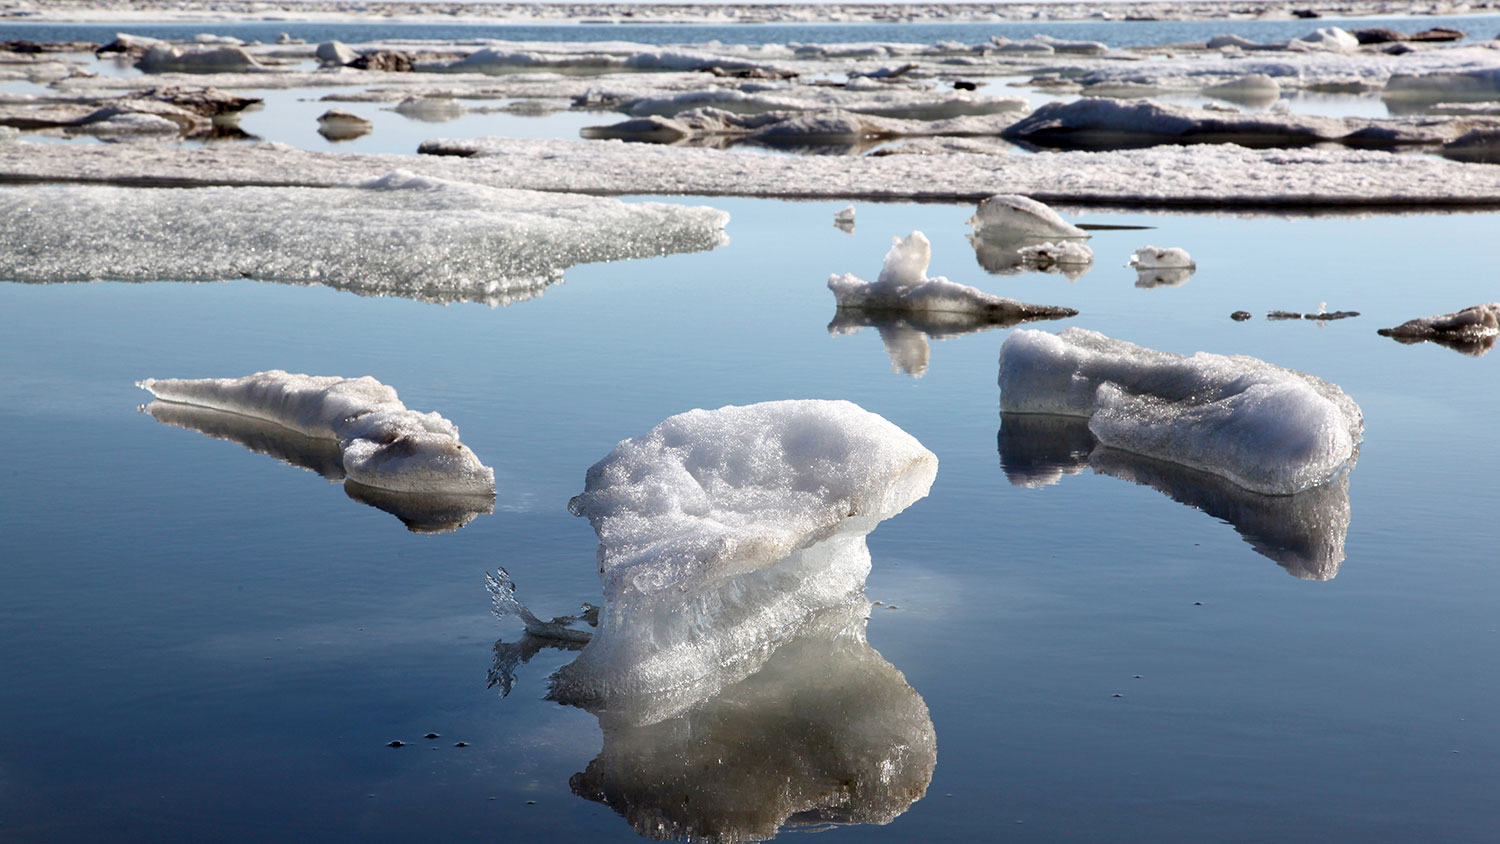 Melting ice bits in the sea